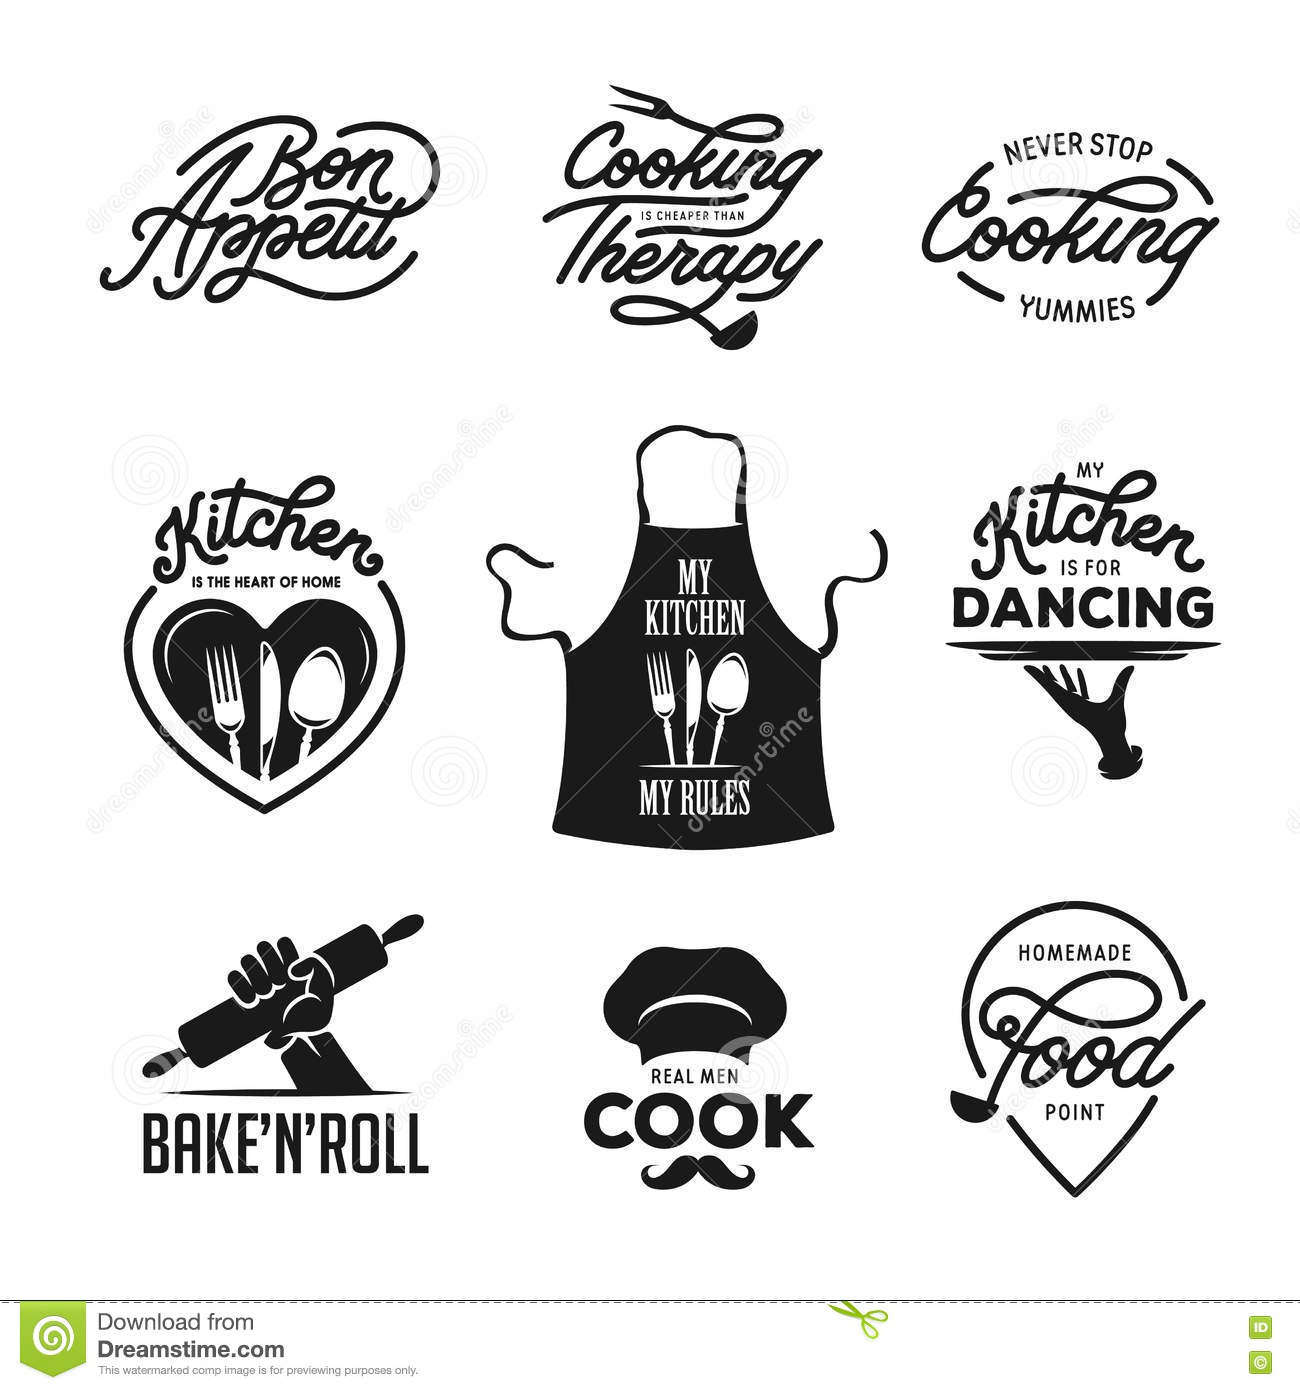 Poster design elements - Cooking And Kitchen Related Quotes Set Poster Design Elements Vintage Vector Illustration Stock